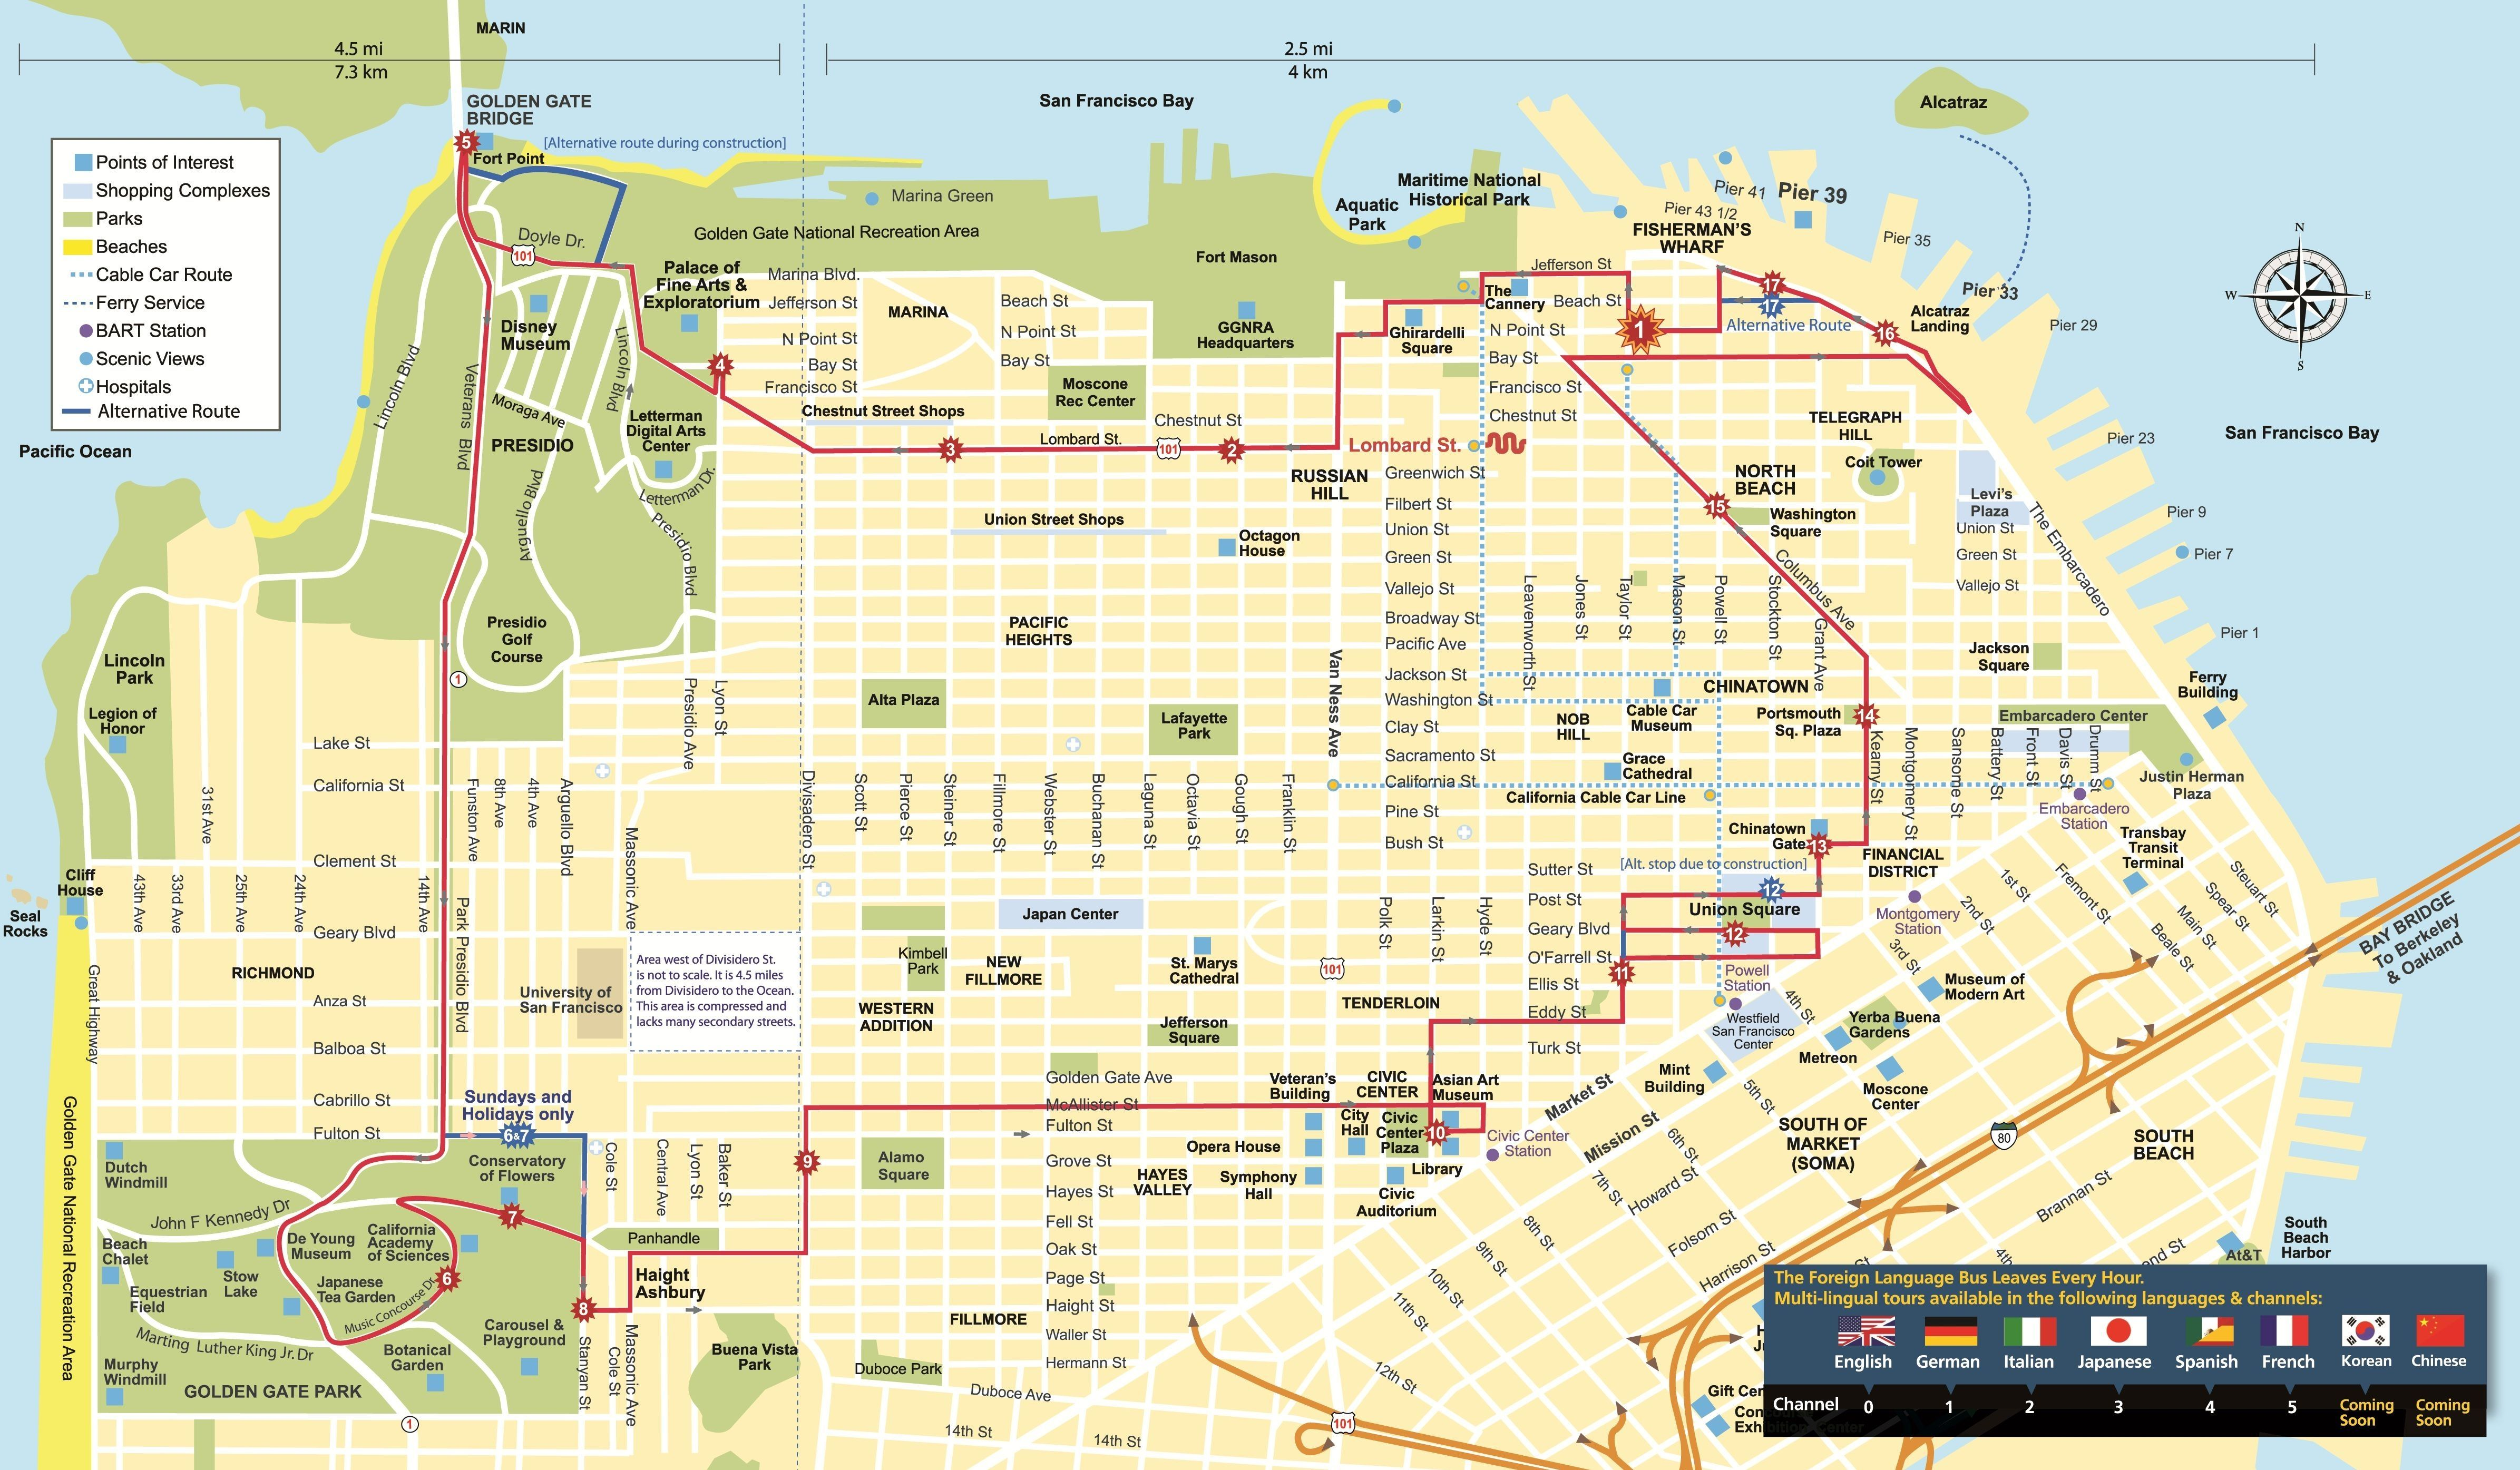 Map Of San Francisco san-francisco-s-excursion-hop-on ... San Francisco Sightseeing Map on victoria sightseeing map, santa cruz sightseeing map, fisherman's wharf sightseeing map, hollywood los angeles sightseeing map, japanese tea garden sf map, houston sightseeing map, hong kong sightseeing map, albuquerque sightseeing map, chicago sightseeing map, sf city map, bergen sightseeing map, boston sightseeing map, philadelphia sightseeing map, brooklyn sightseeing map, new jersey sightseeing map, london sightseeing map, california sightseeing map, charleston sightseeing map, tennessee sightseeing map, kansas city sightseeing map,